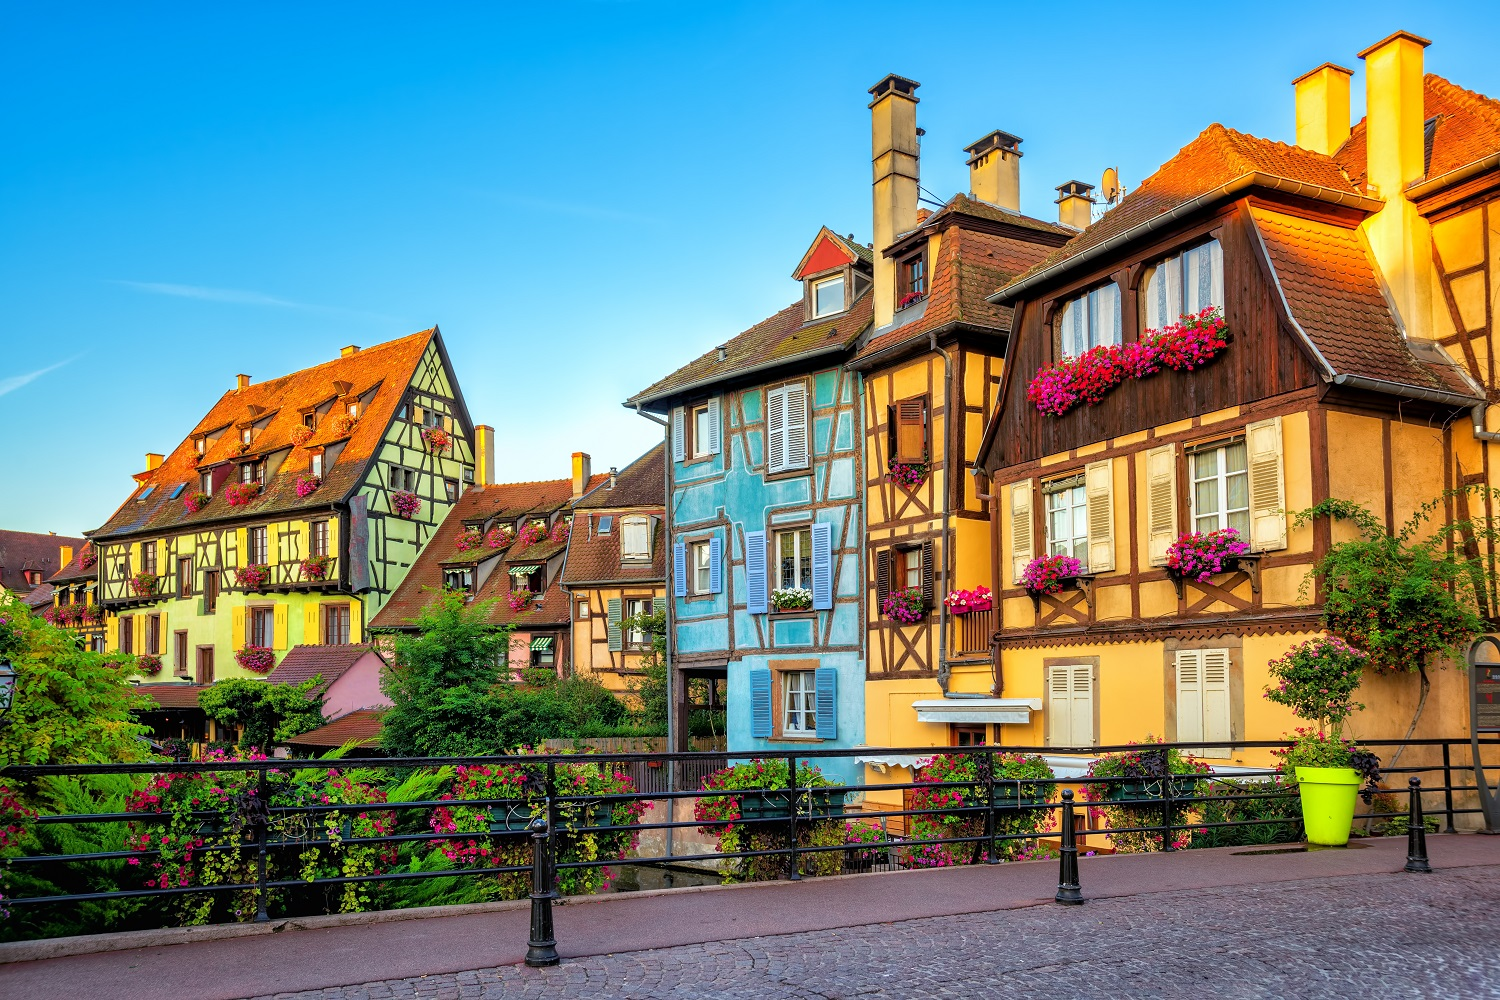 Around the world in 8 fairytale destinations